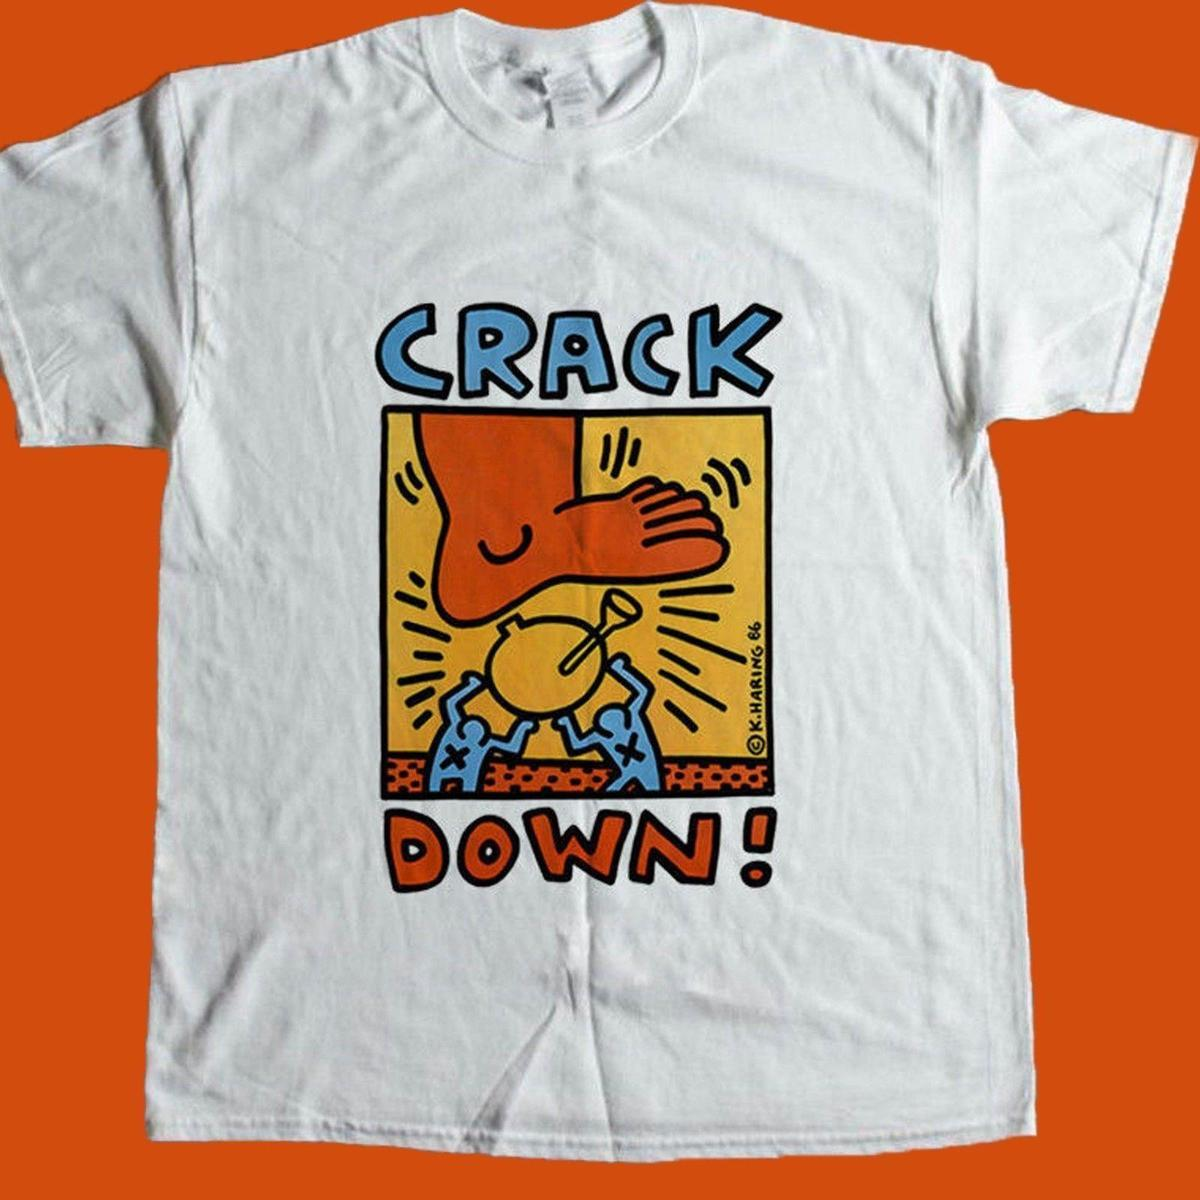 Vintage Rare KEITH HARING Crack Down T Shirt Size S 2XL Reprint Limited  Men S T Shirts Summer Style Fashion Swag Men T Shirts Top T Shirt Sites  Cool T ... 2fd1f8ec1